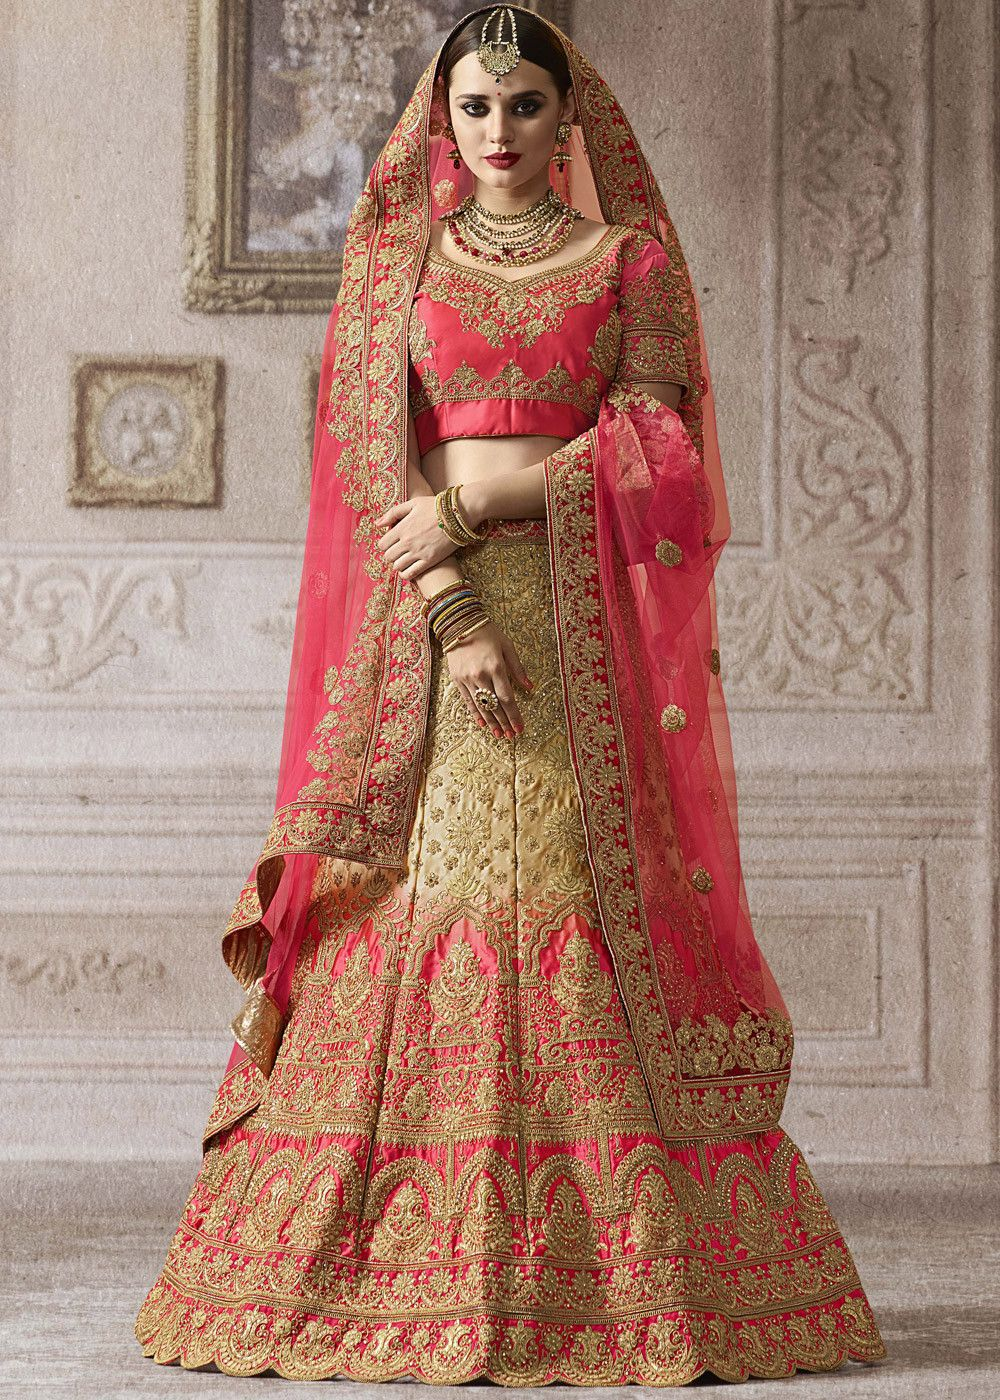 50301a007f Be the prettiest bride in this beige and pink shaded #bridal #lehenga  embellished with all over heavy zari embroidery and kundan work.